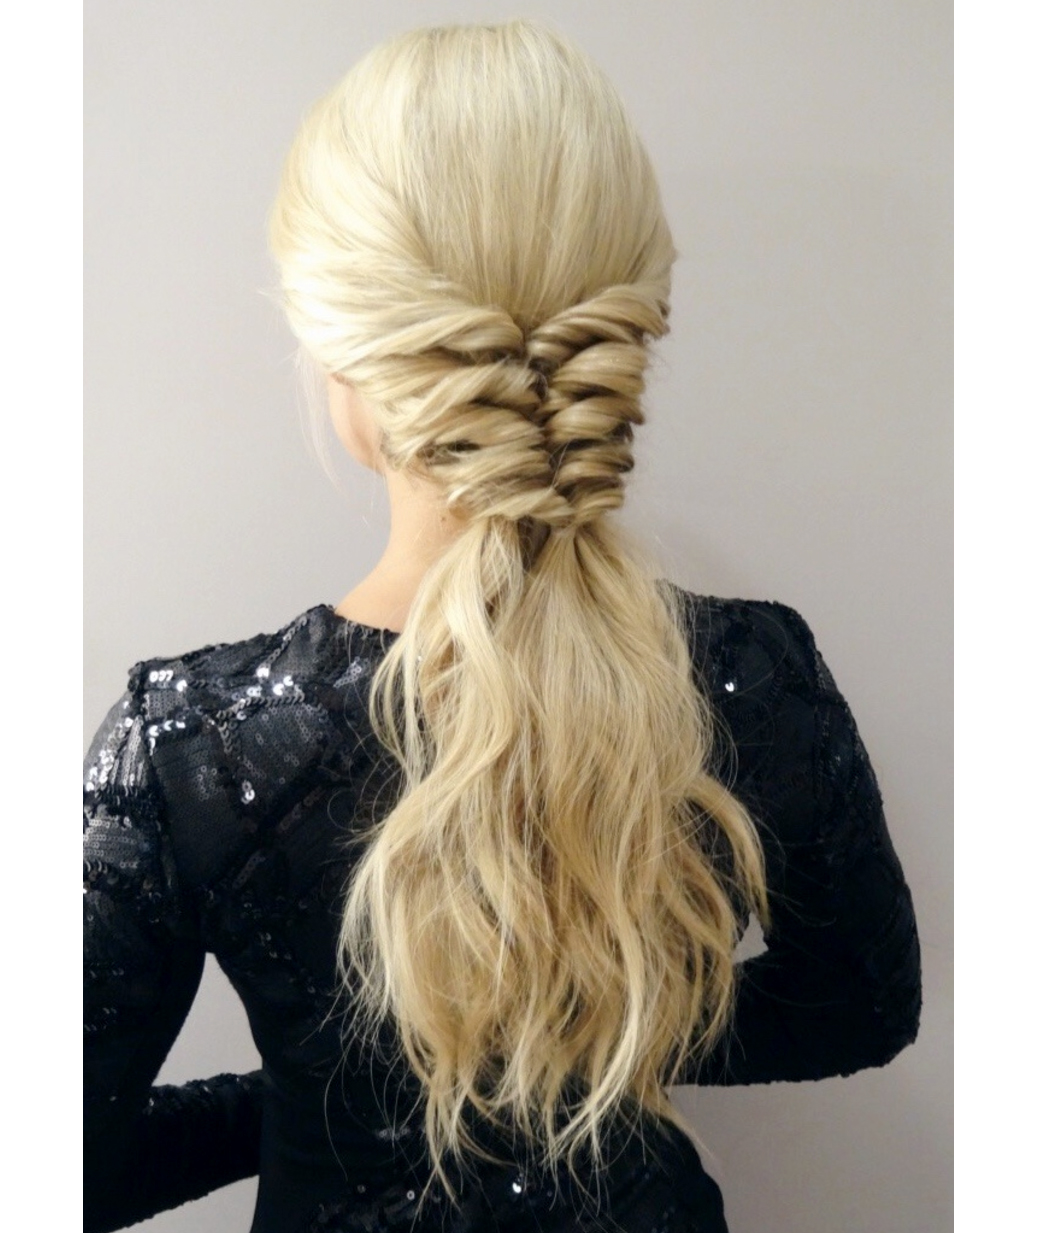 Groovy Ponytail Hairstyles To Help You Beat The Heat Real Simple Natural Hairstyles Runnerswayorg